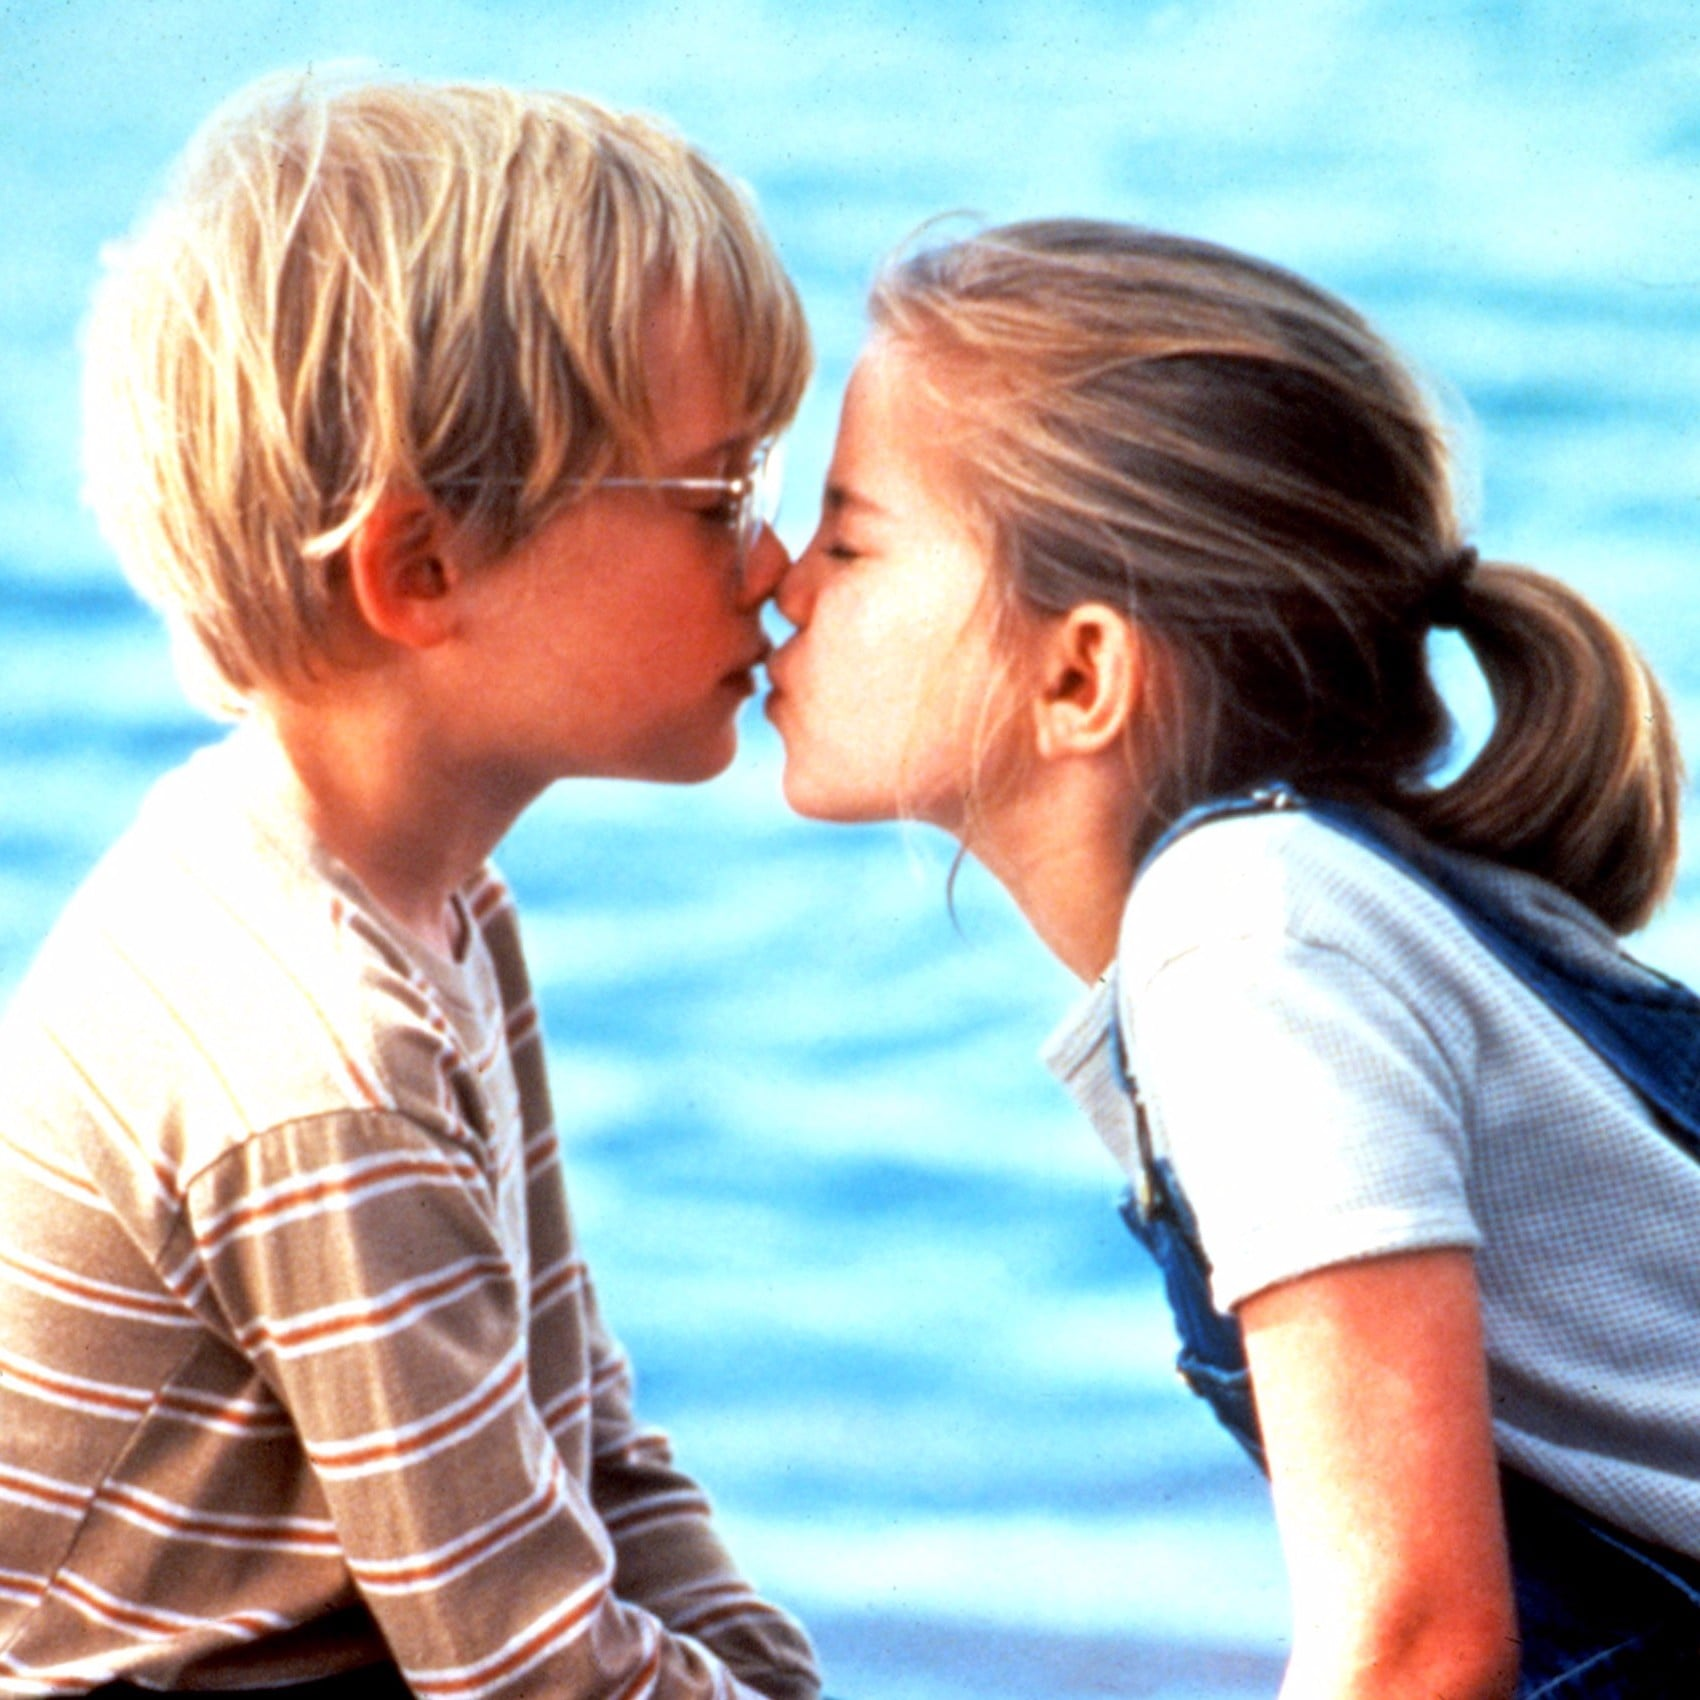 Top 5 recommendations for first kisses